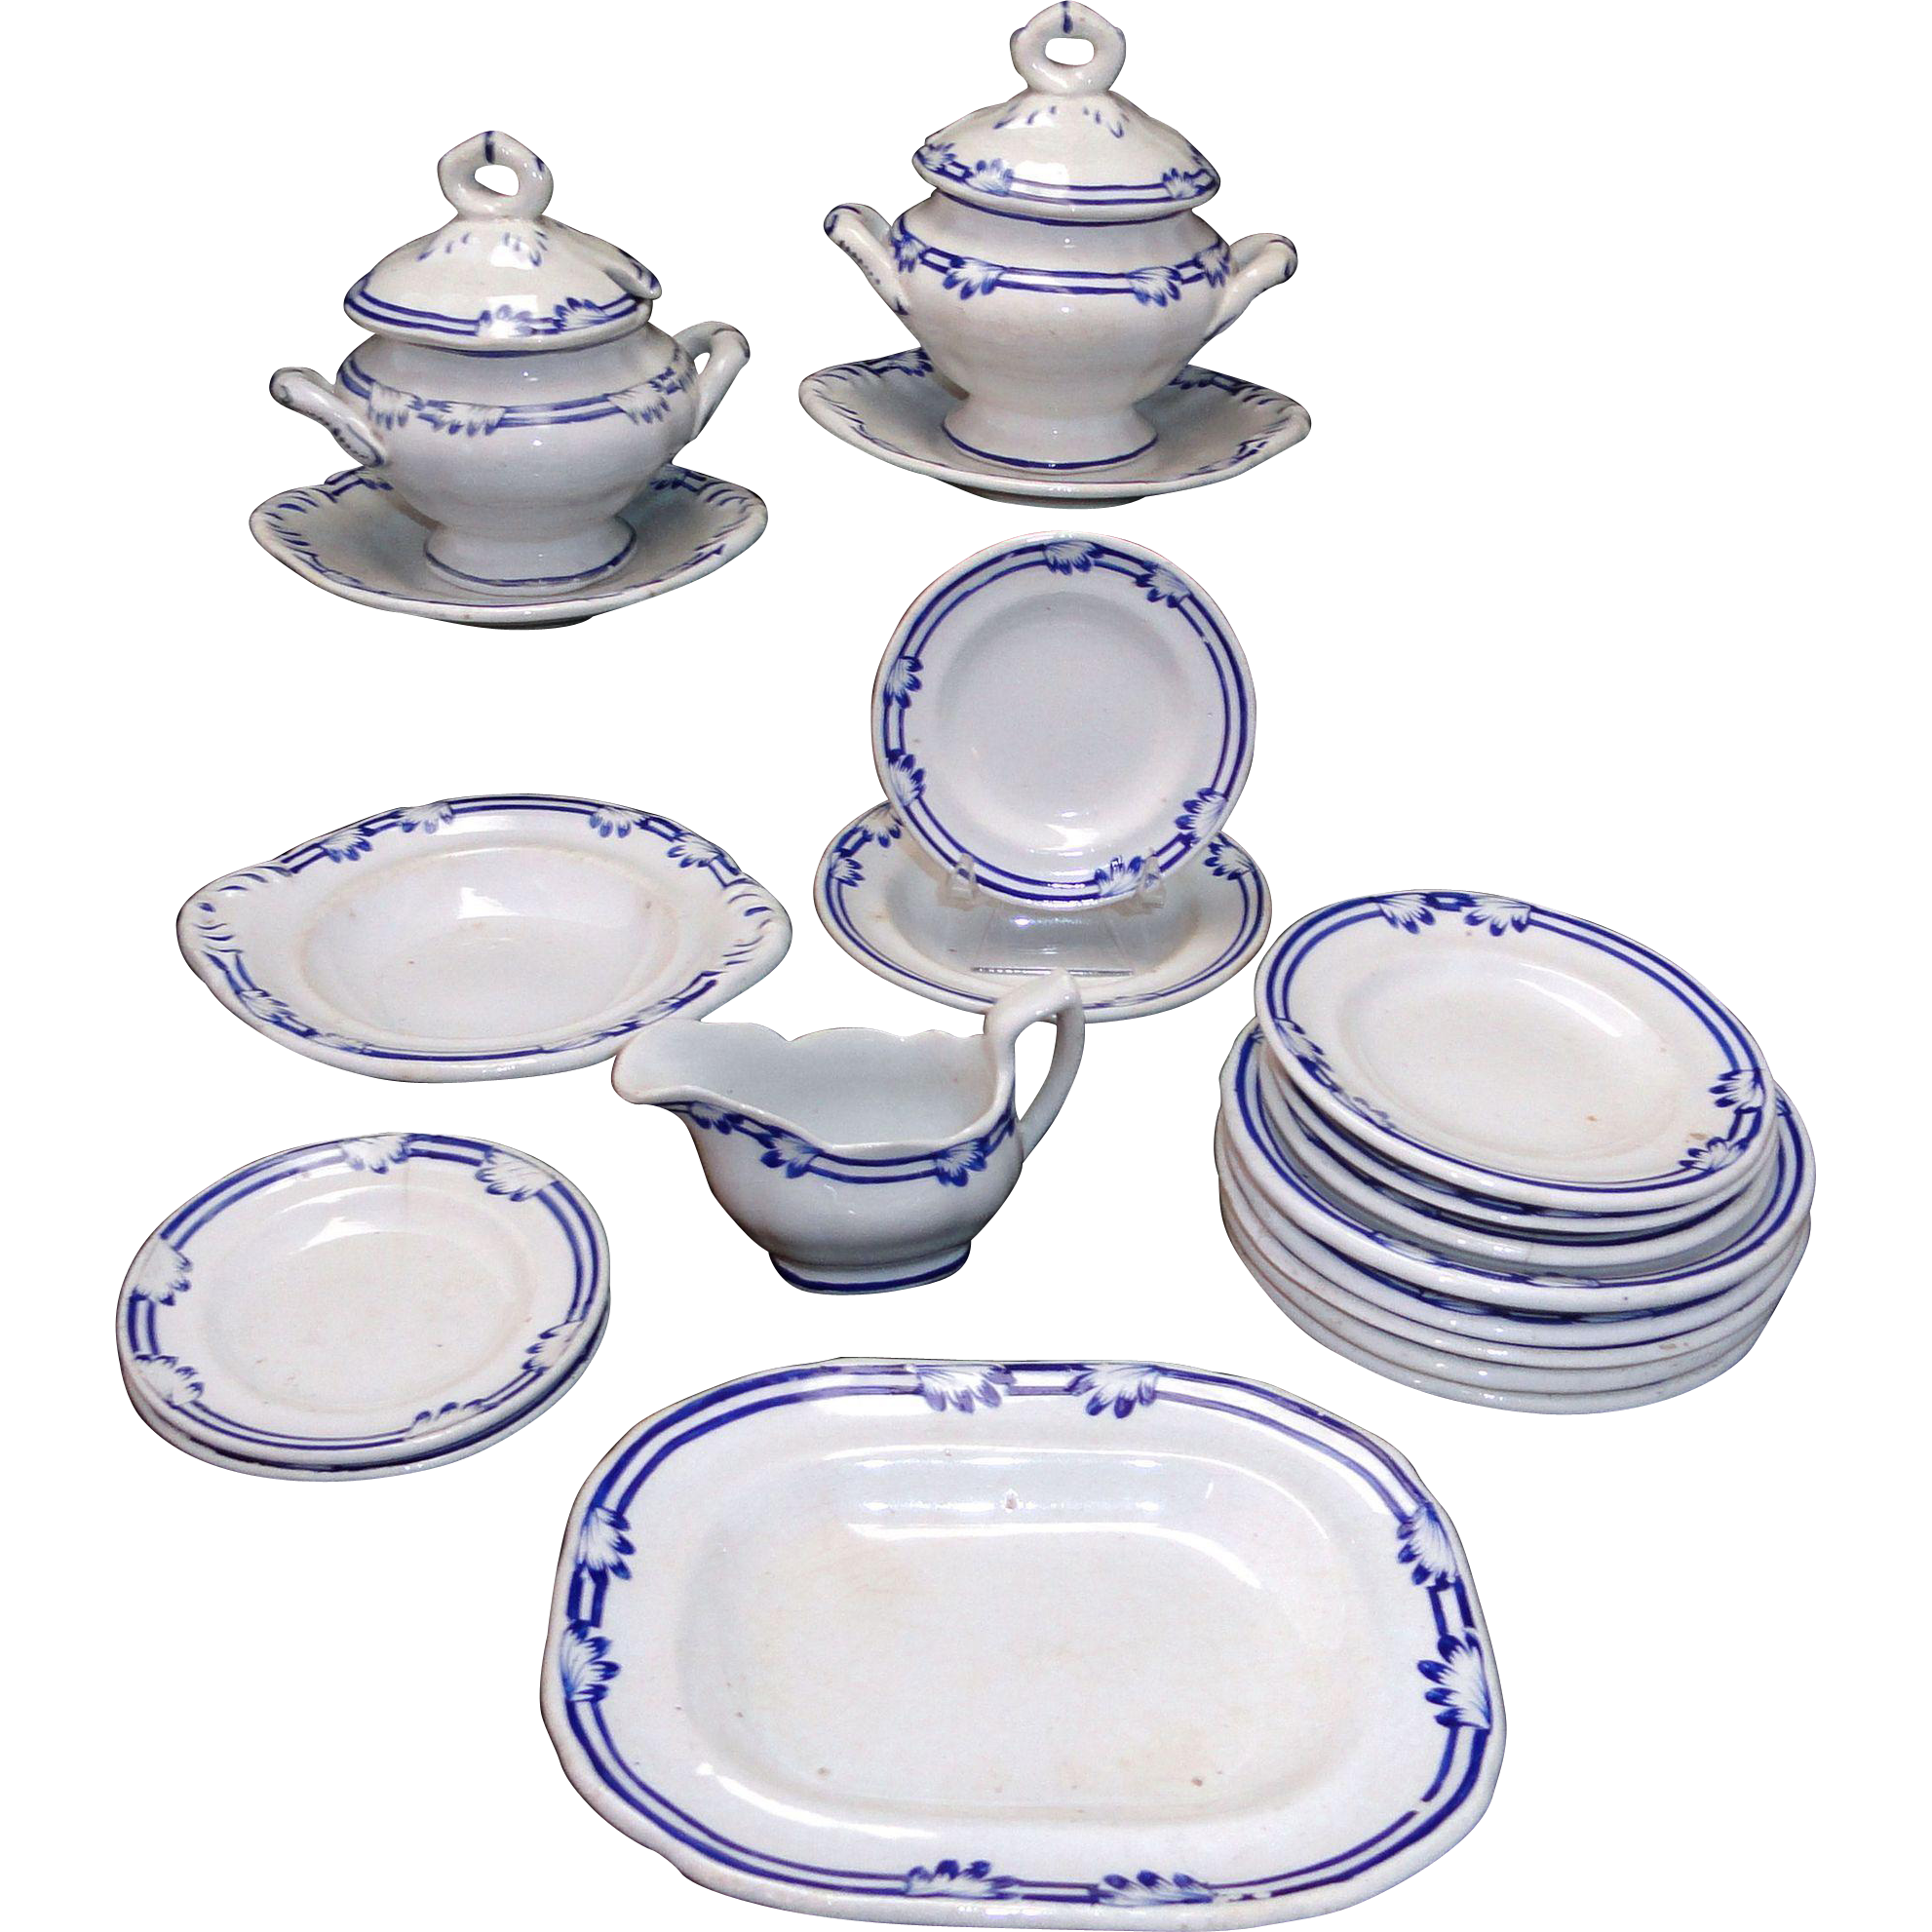 Rare English Childs Blue Edge Ironstone Dinner Set Charles Meigh 1825